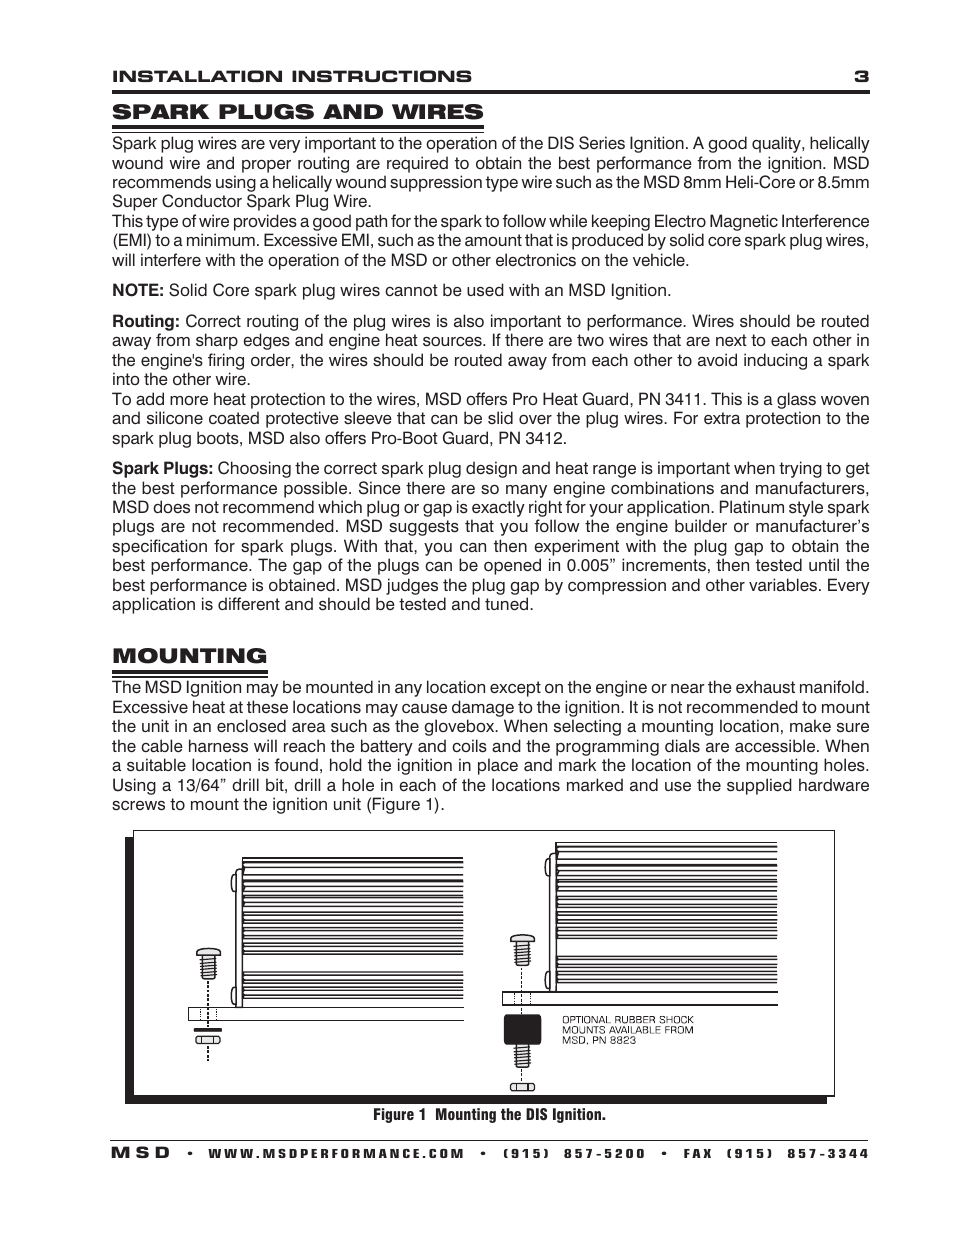 distributorless ignition user manuals